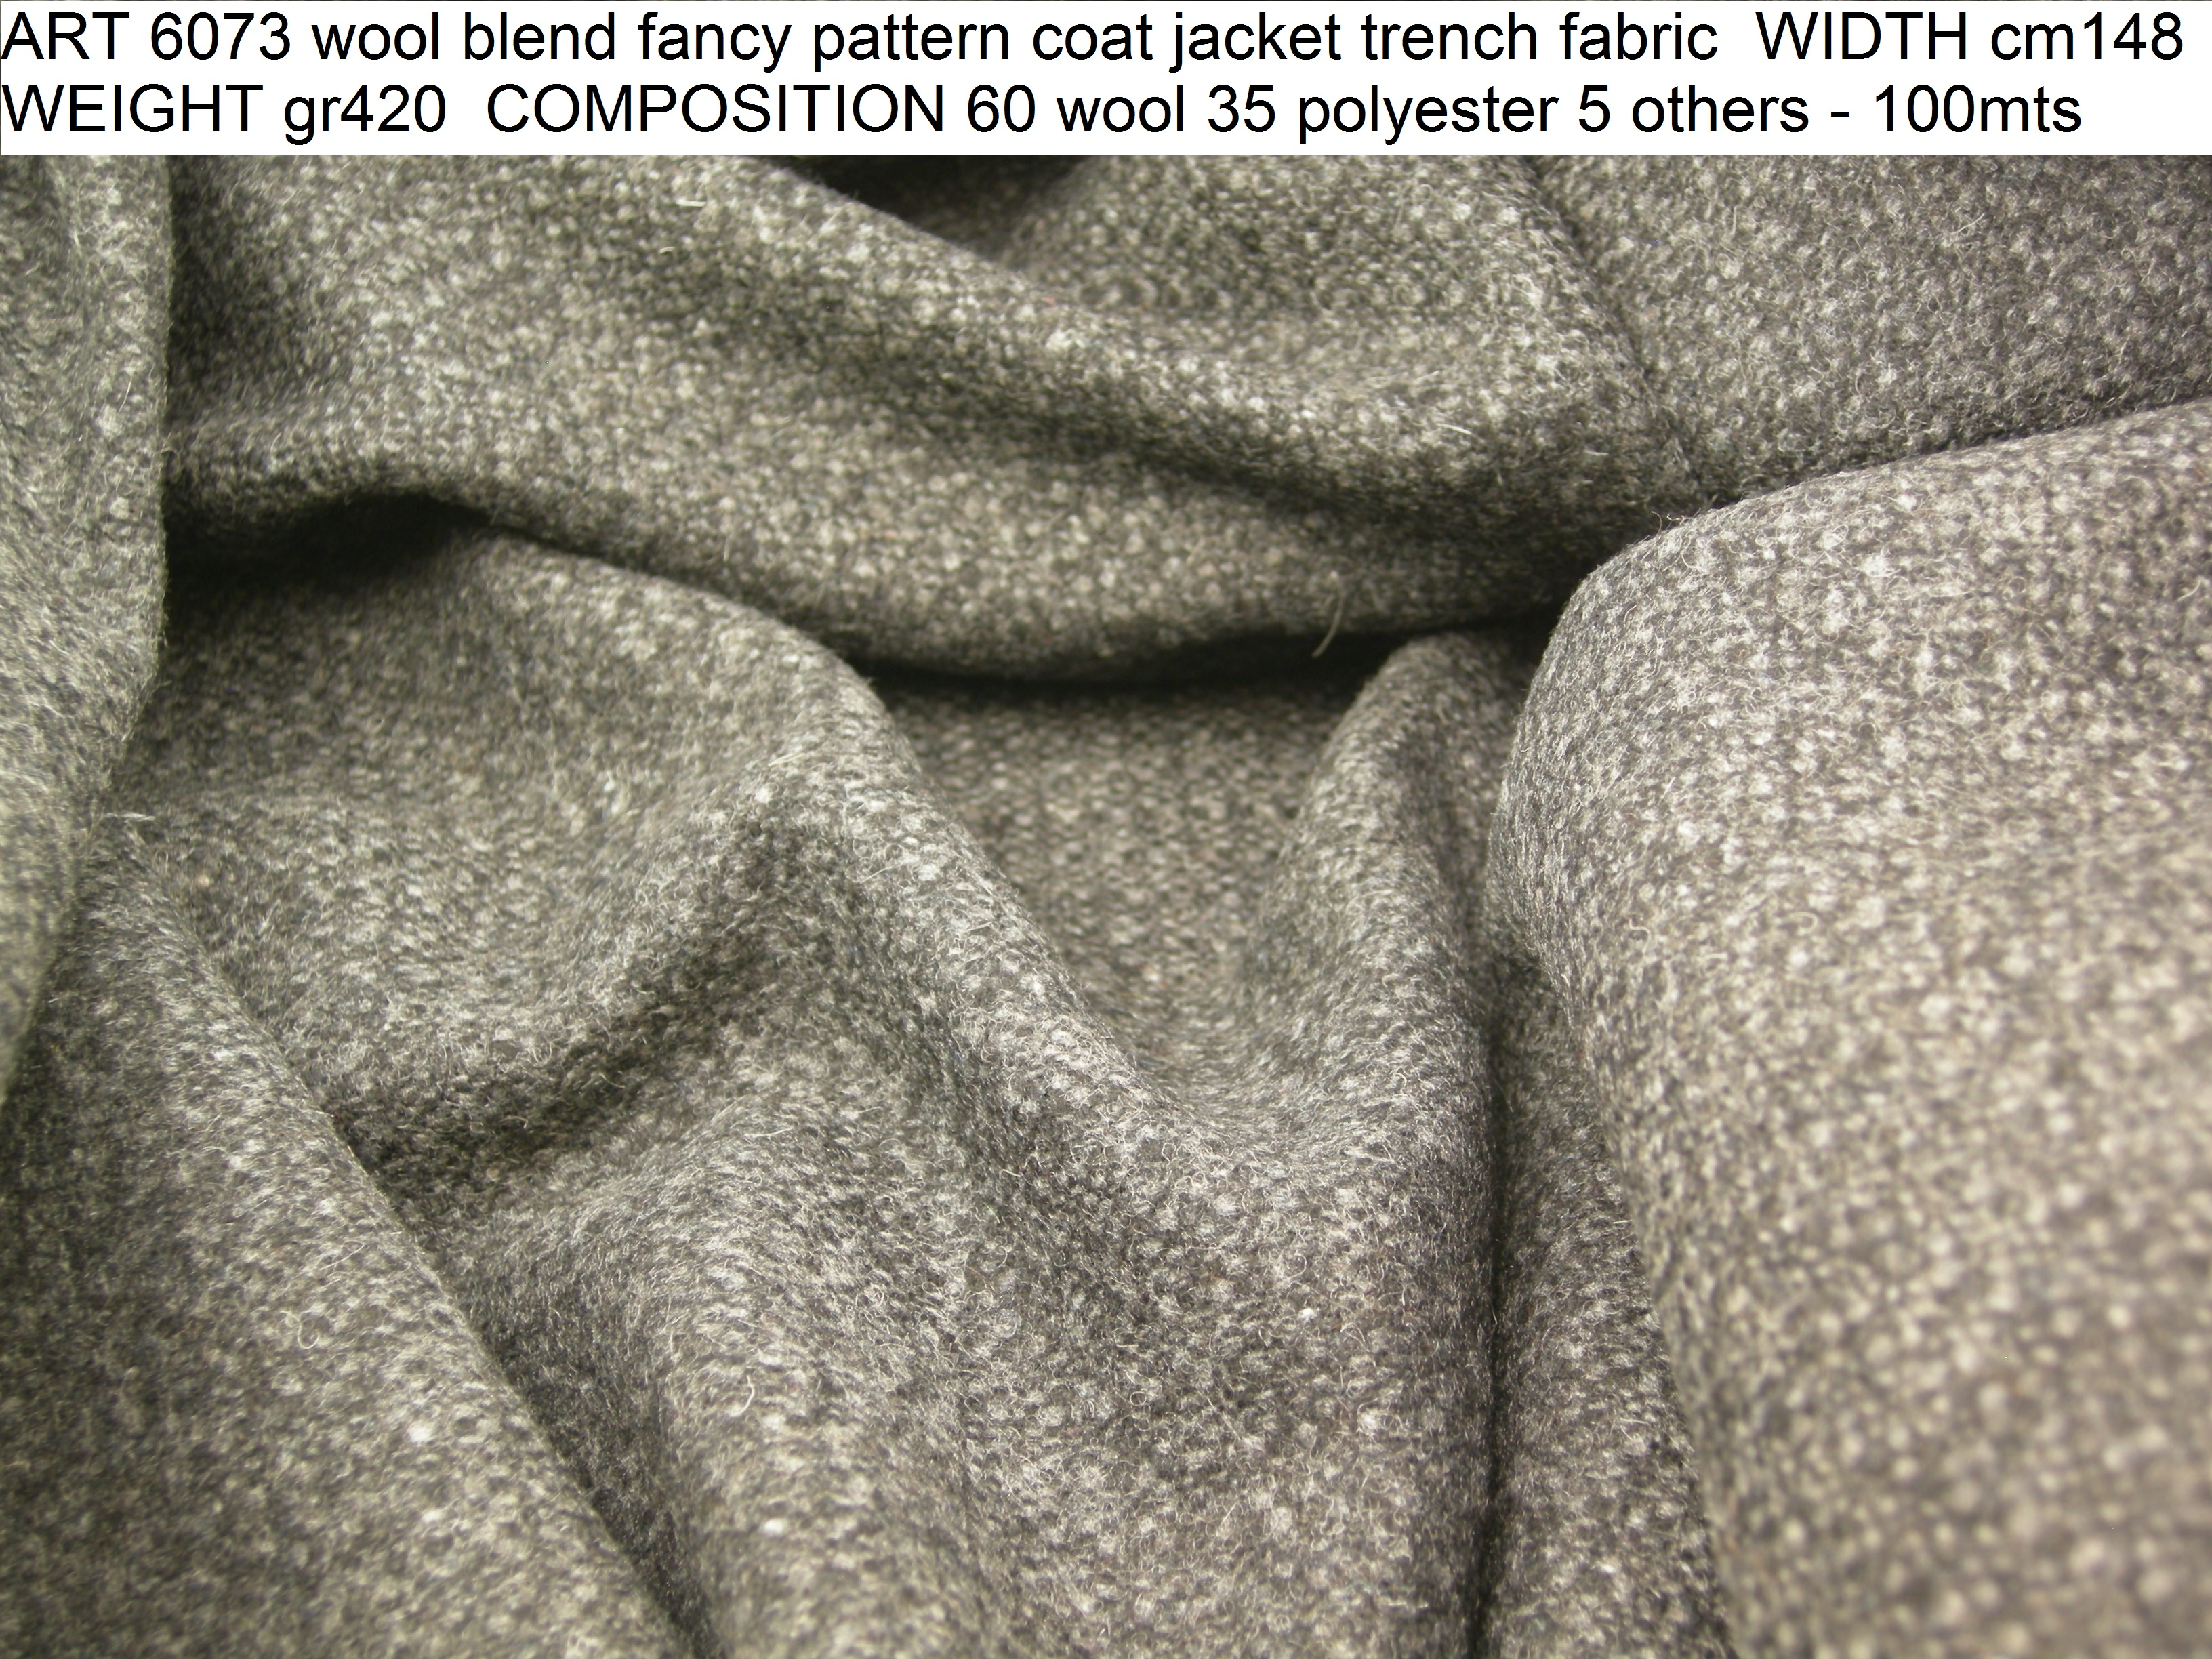 ART 6073 wool blend fancy pattern coat jacket trench fabric WIDTH cm148 WEIGHT gr420 COMPOSITION 60 wool 35 polyester 5 others - 100mts